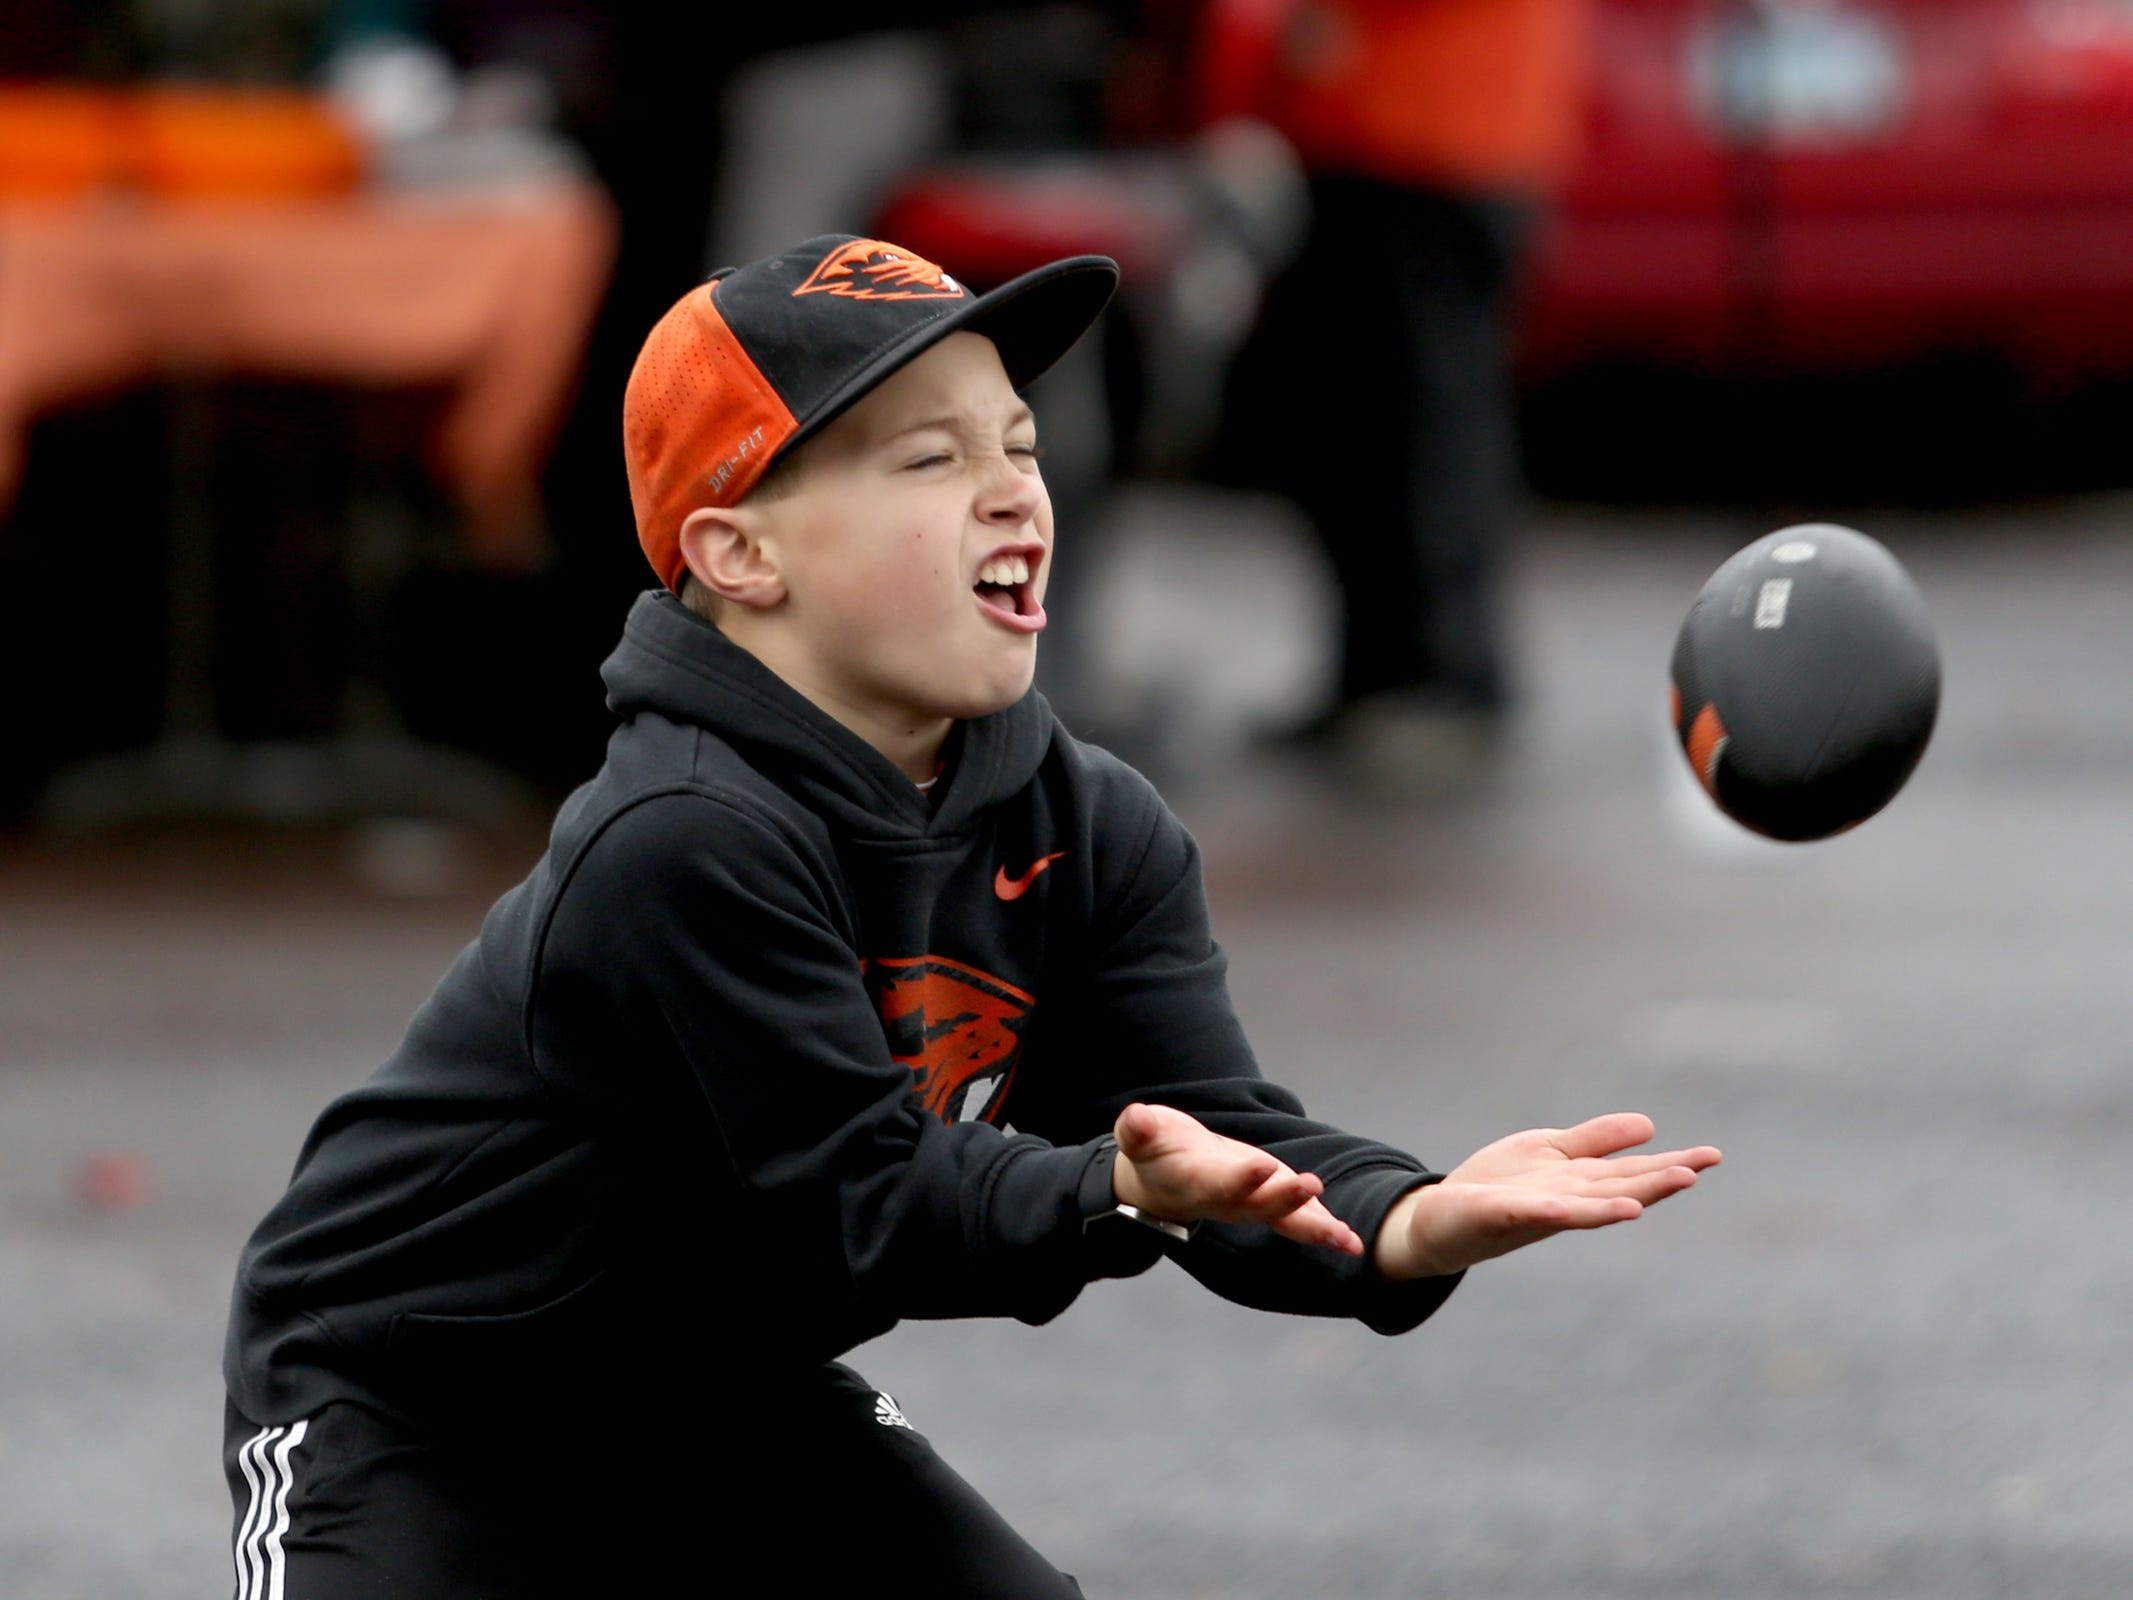 Derek Davis, 9, of Corvallis, plays catch before the start of the Oregon vs. Oregon State Civil war football game at Oregon State University in Corvallis on Friday, Nov. 23, 2018.